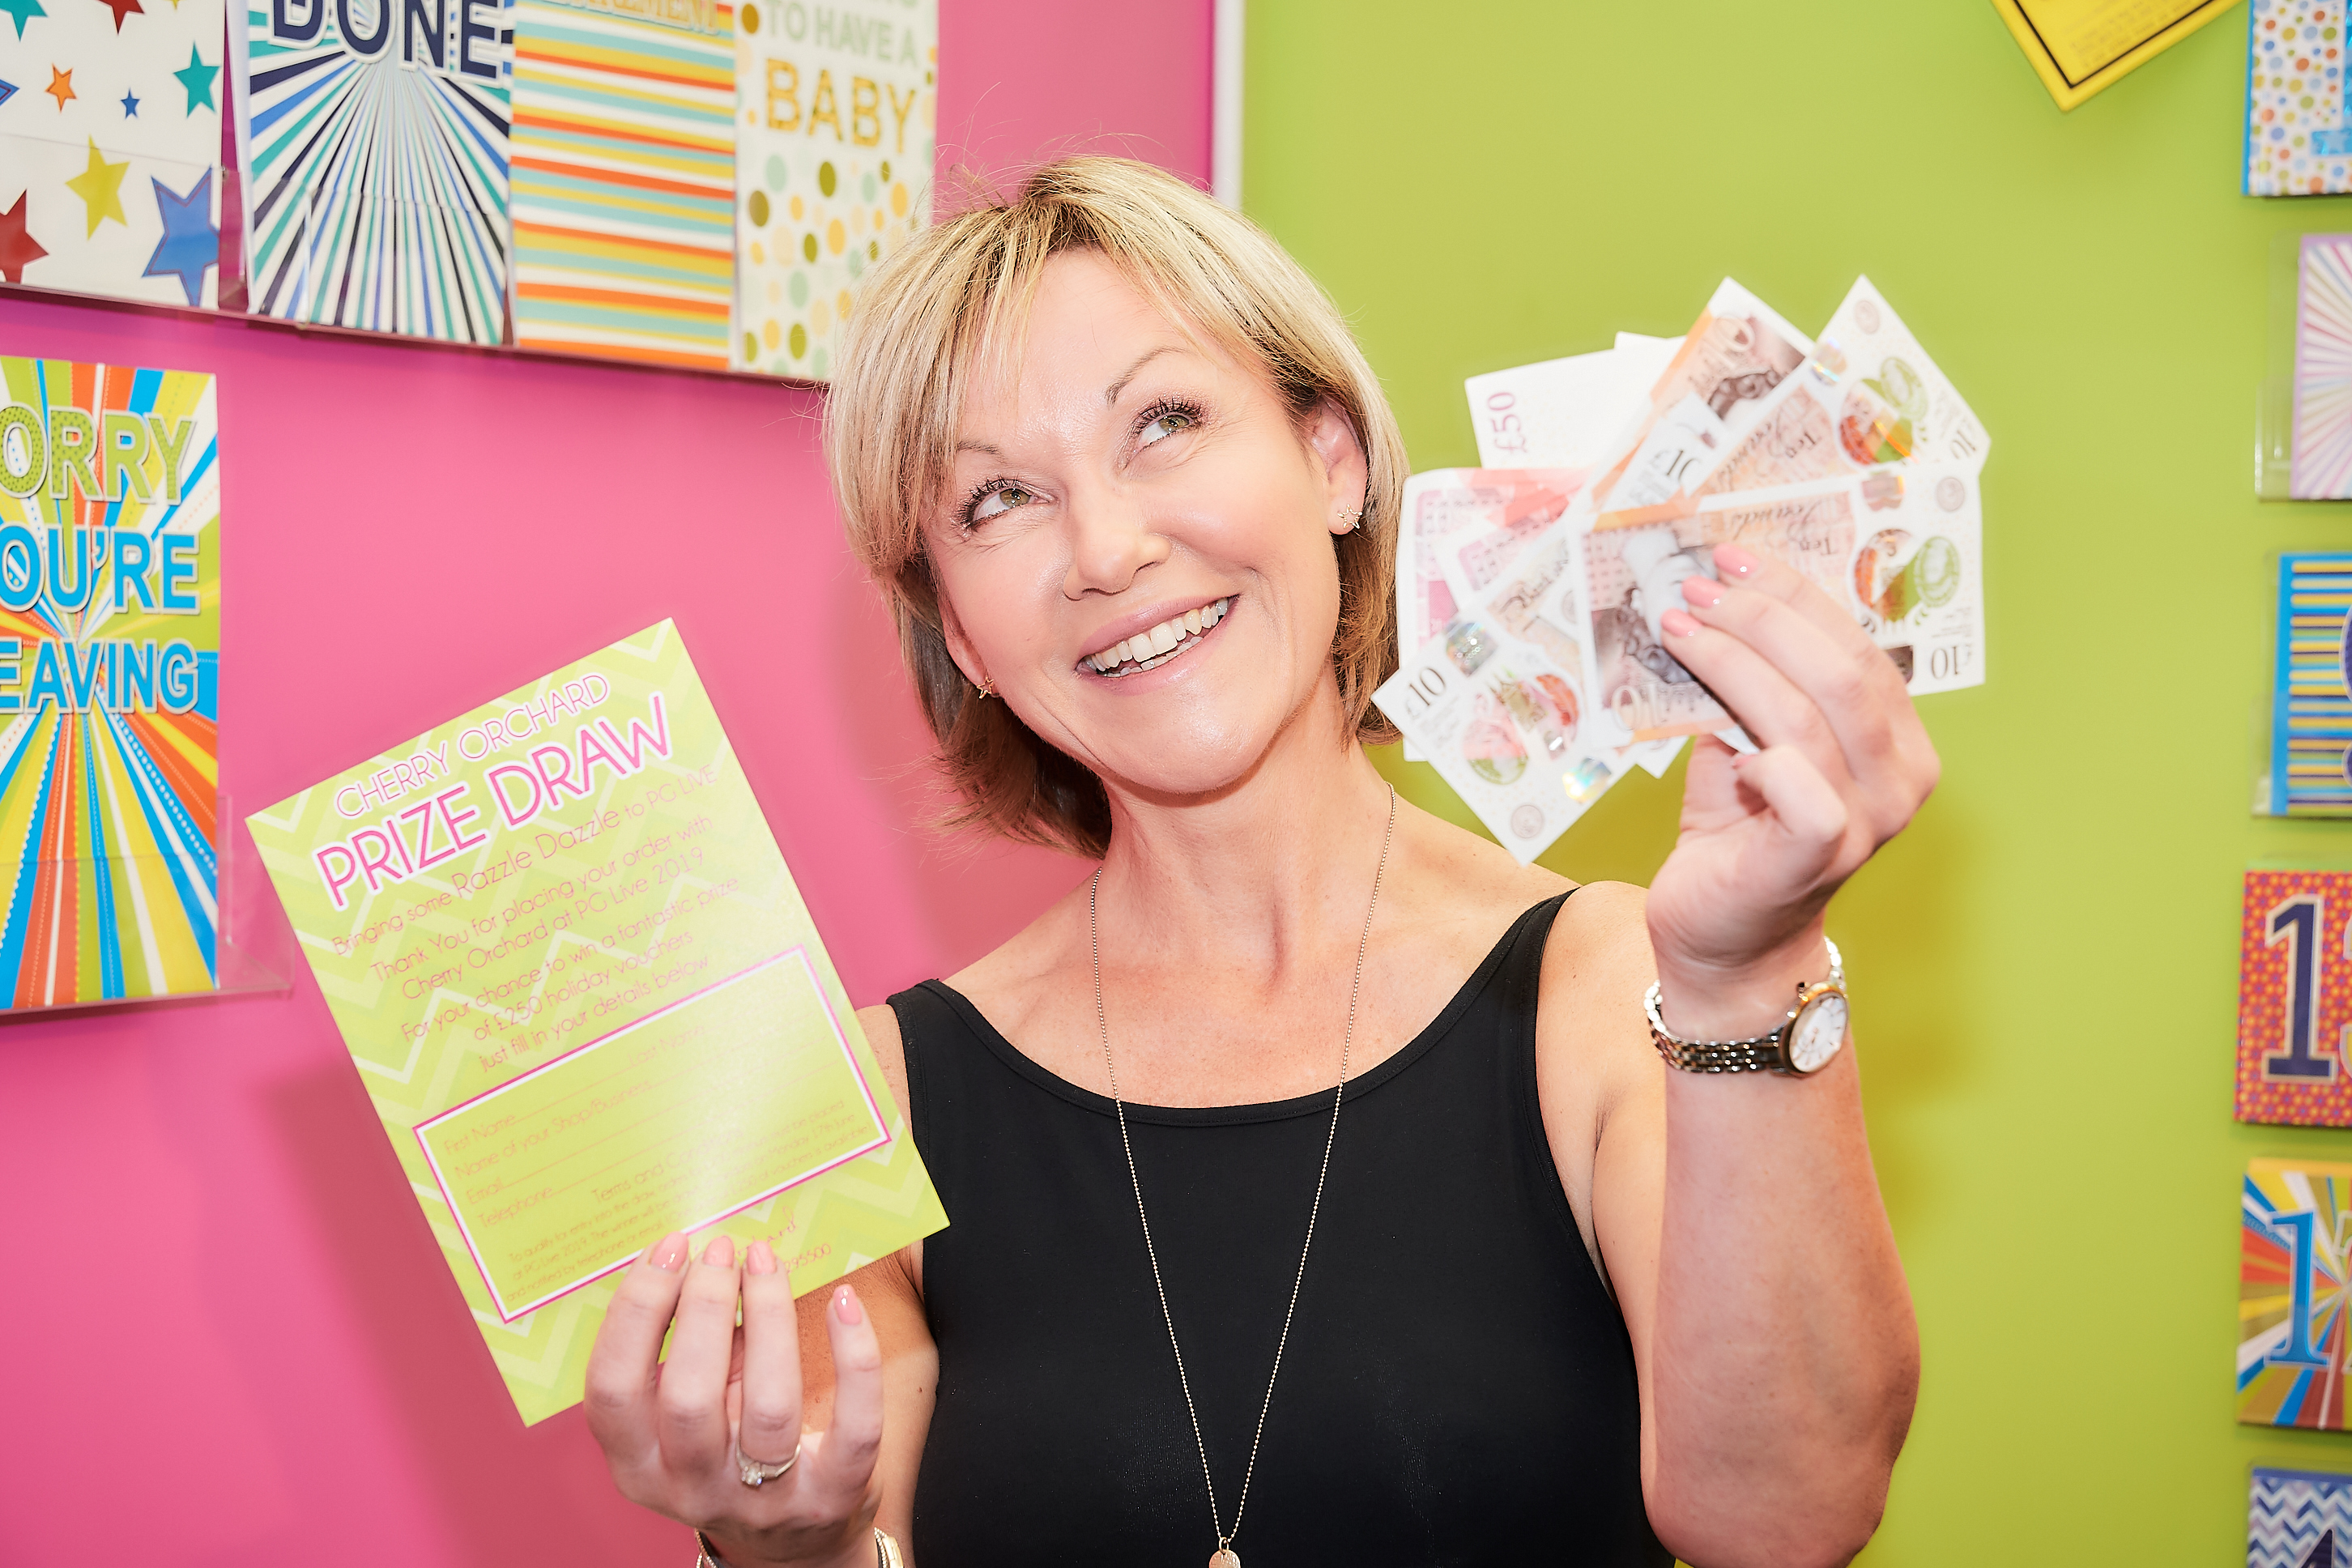 Above: Jackie Collins, managing director of Cherry Orchard is ready with 'the readies'. To add some extra razzle dazzle to the launch of its Razzle Dazzle range, there was a prize draw at the show with £250 of holiday vouchers up for grabs.